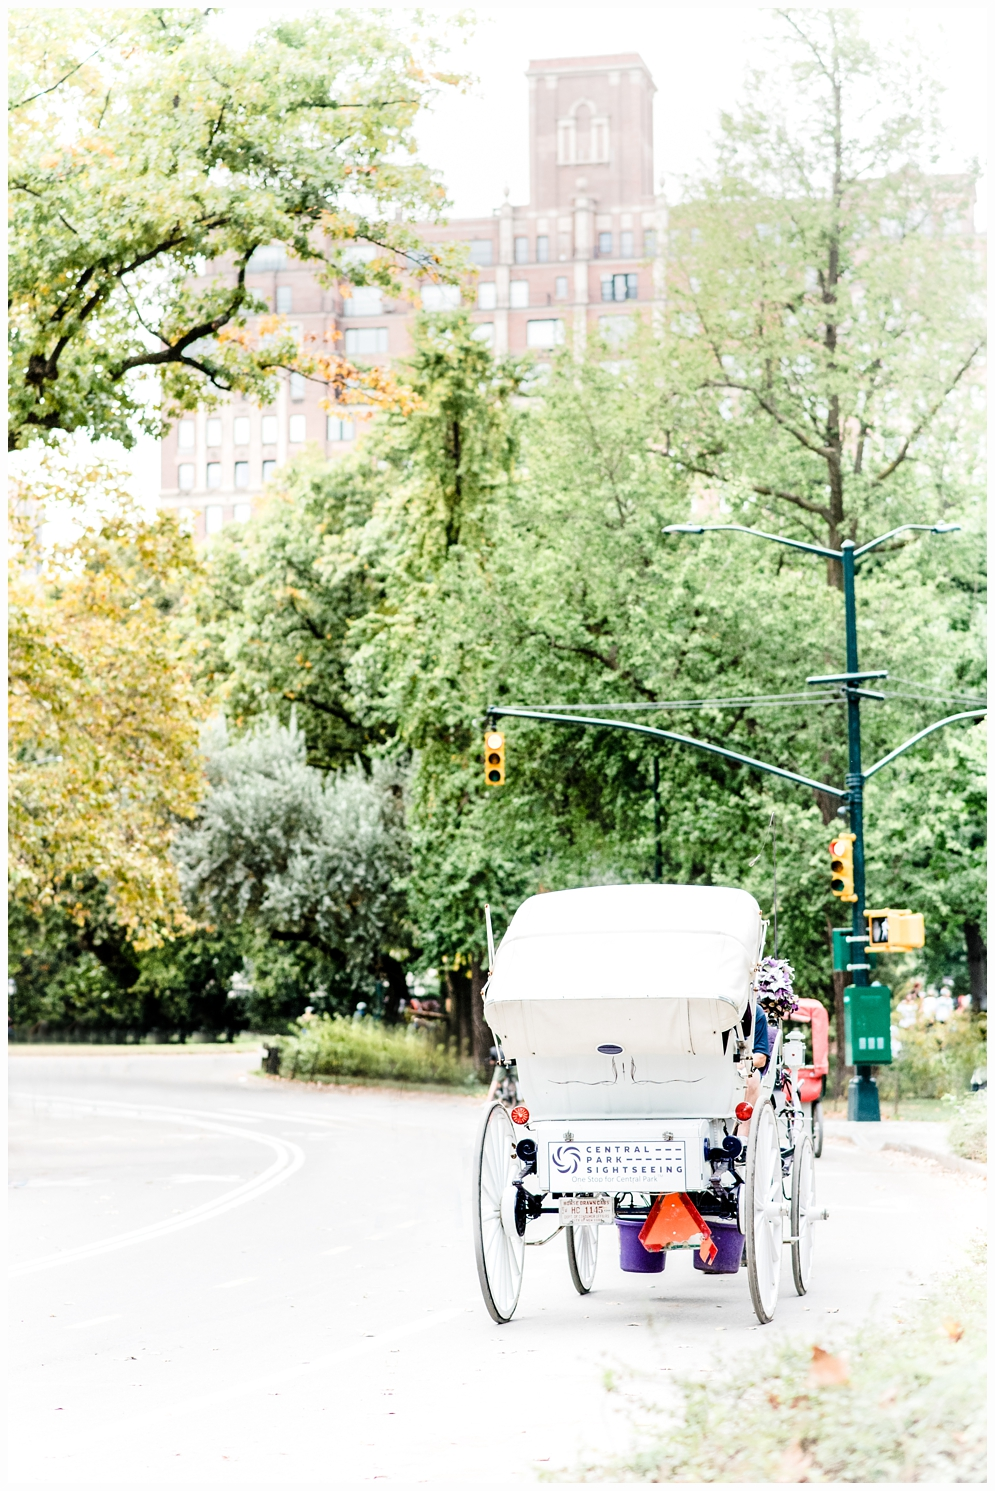 Central park horse drawn carriage